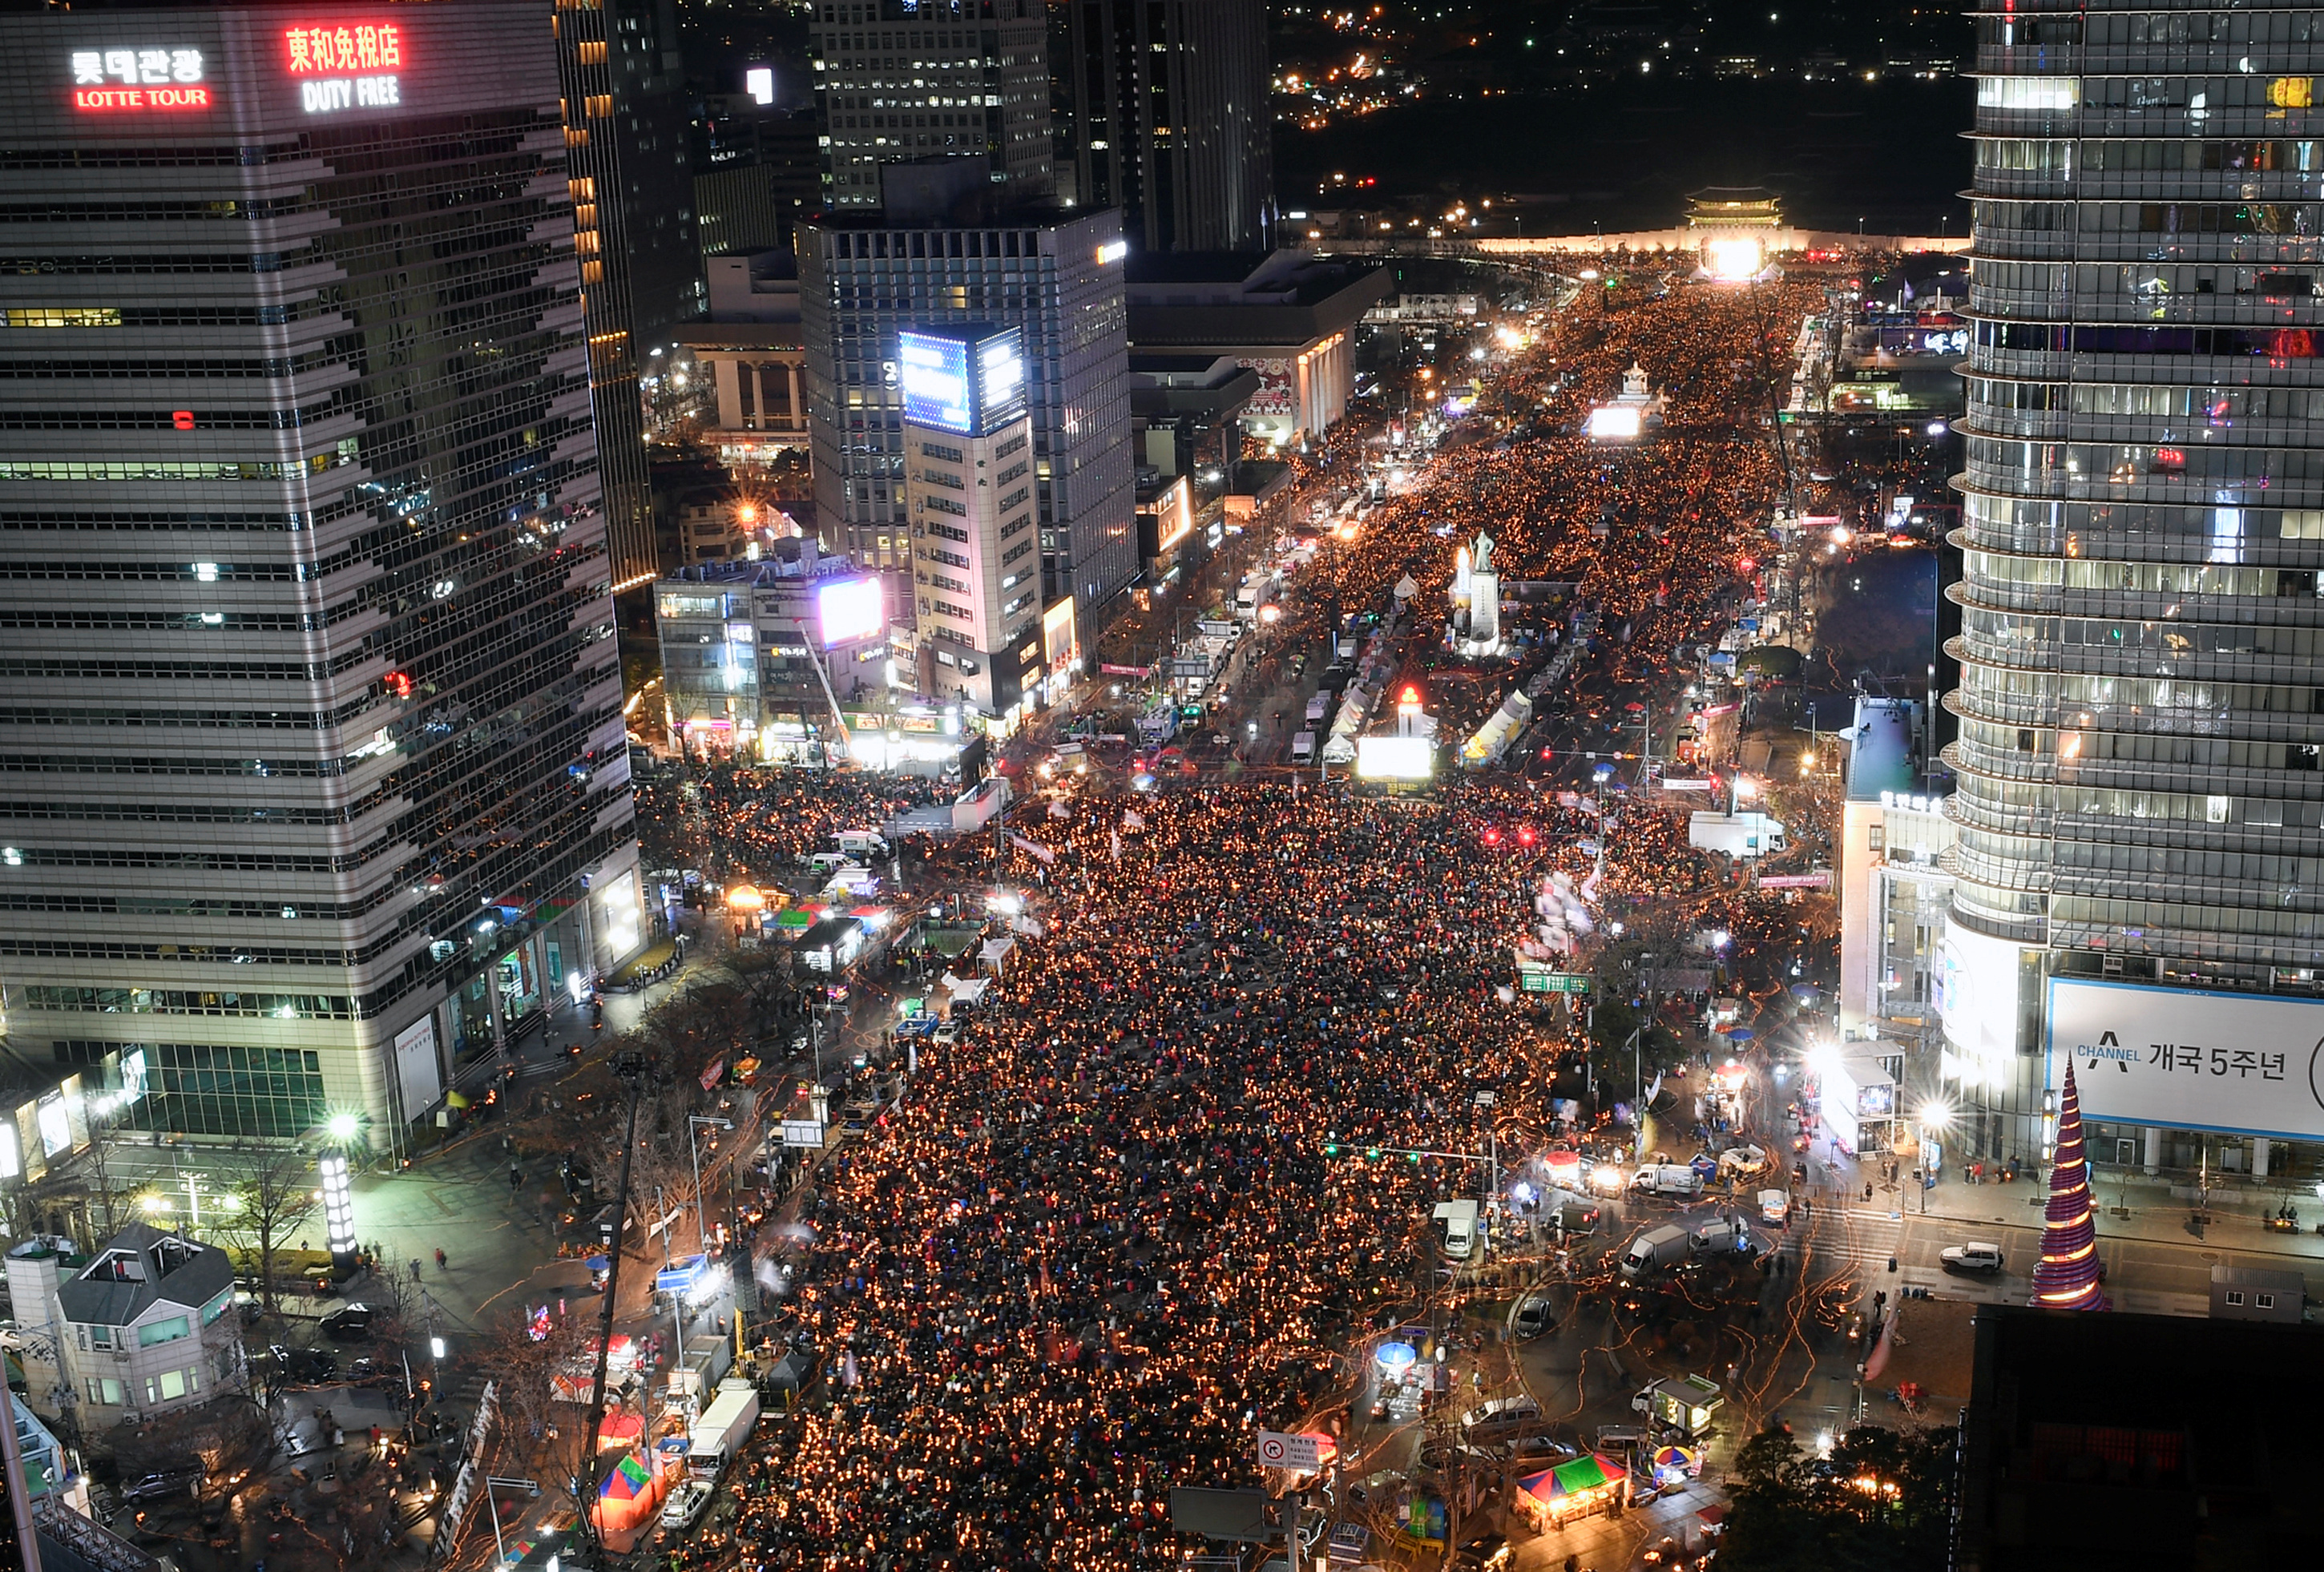 Protesters occupy major streets in the city center for a rally against South Korean President Park Geun-Hye in Seoul, South Korea December 10, 2016. REUTERS/Kim Min-Hee/Pool - RTX2UE2H